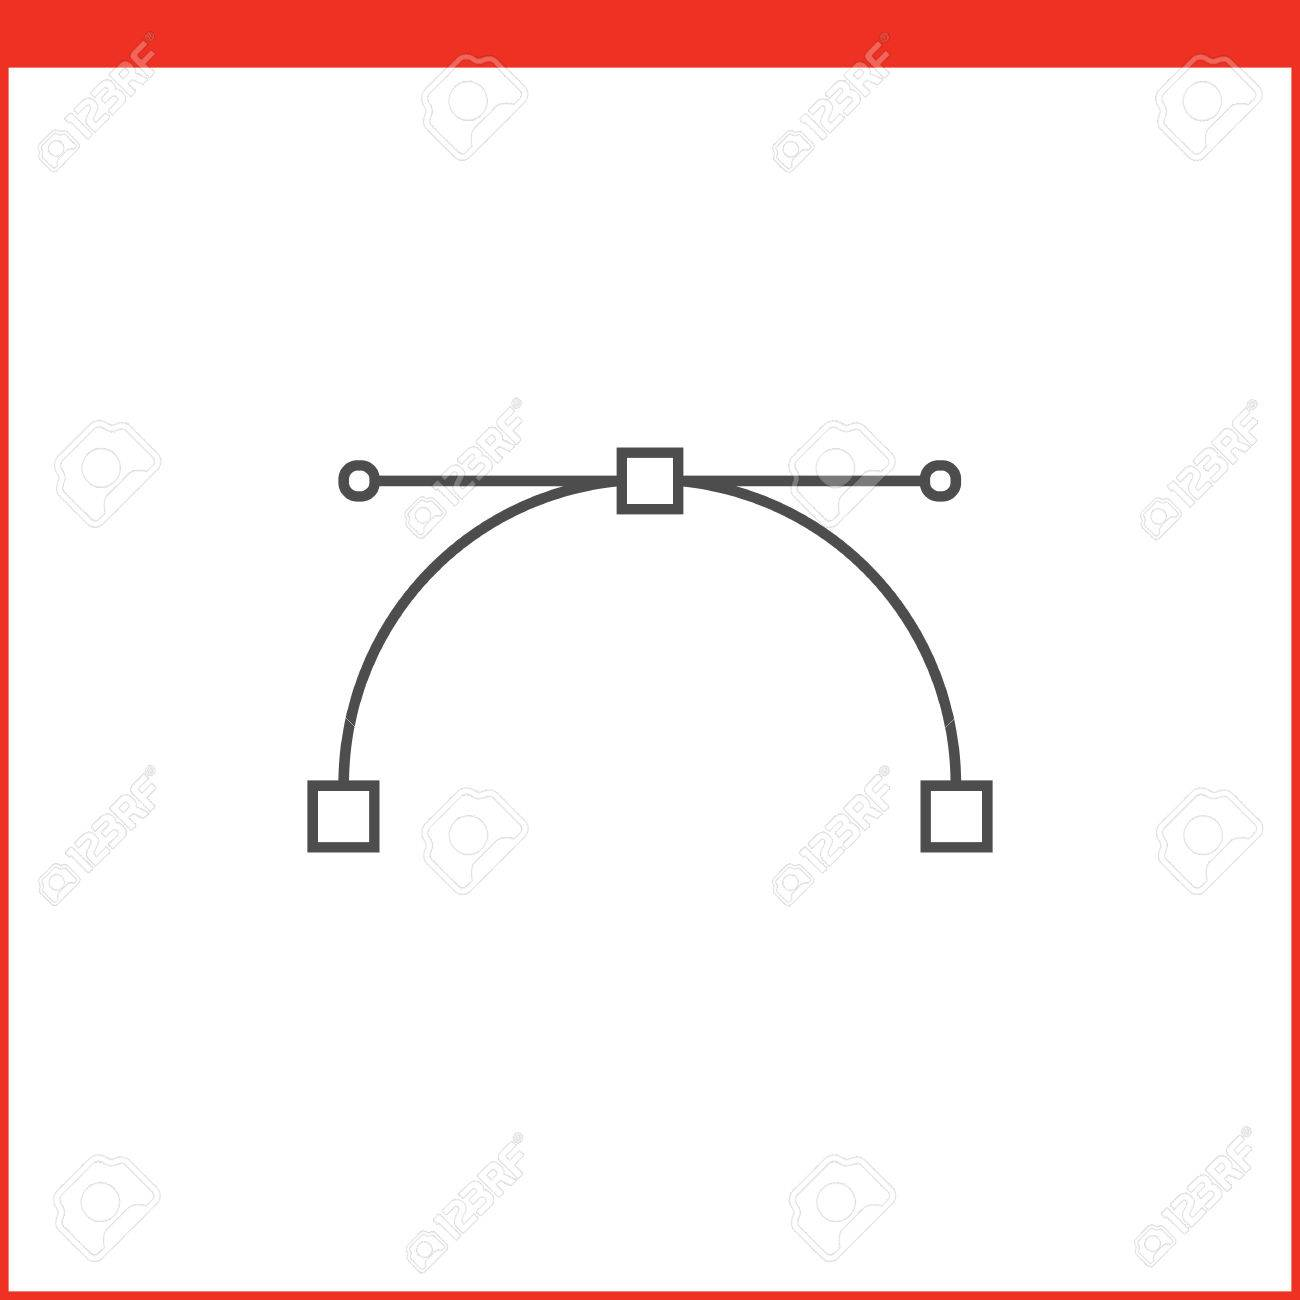 Bezier curve tool icon  Vector graphics designer tool  Simple